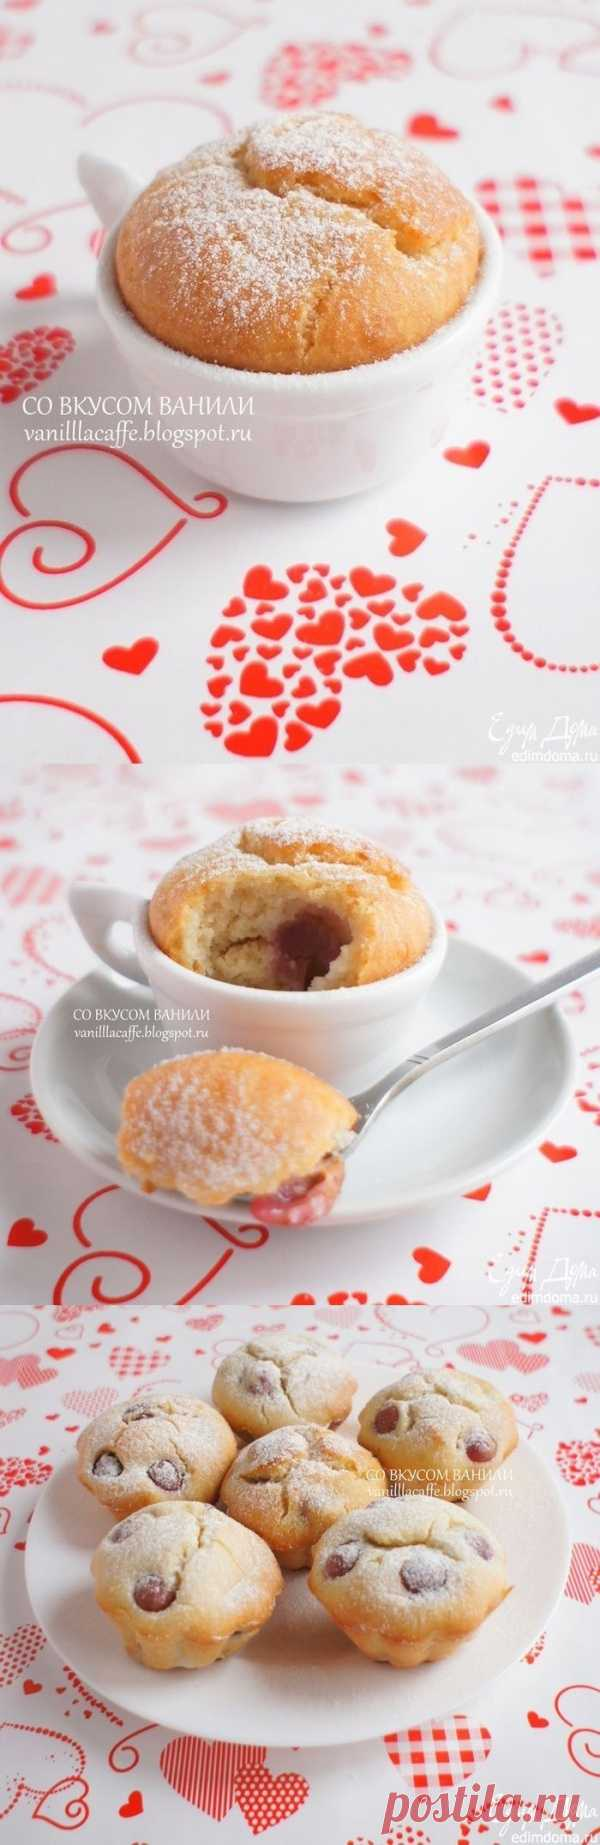 Gentle cakes with grapes and rice flour